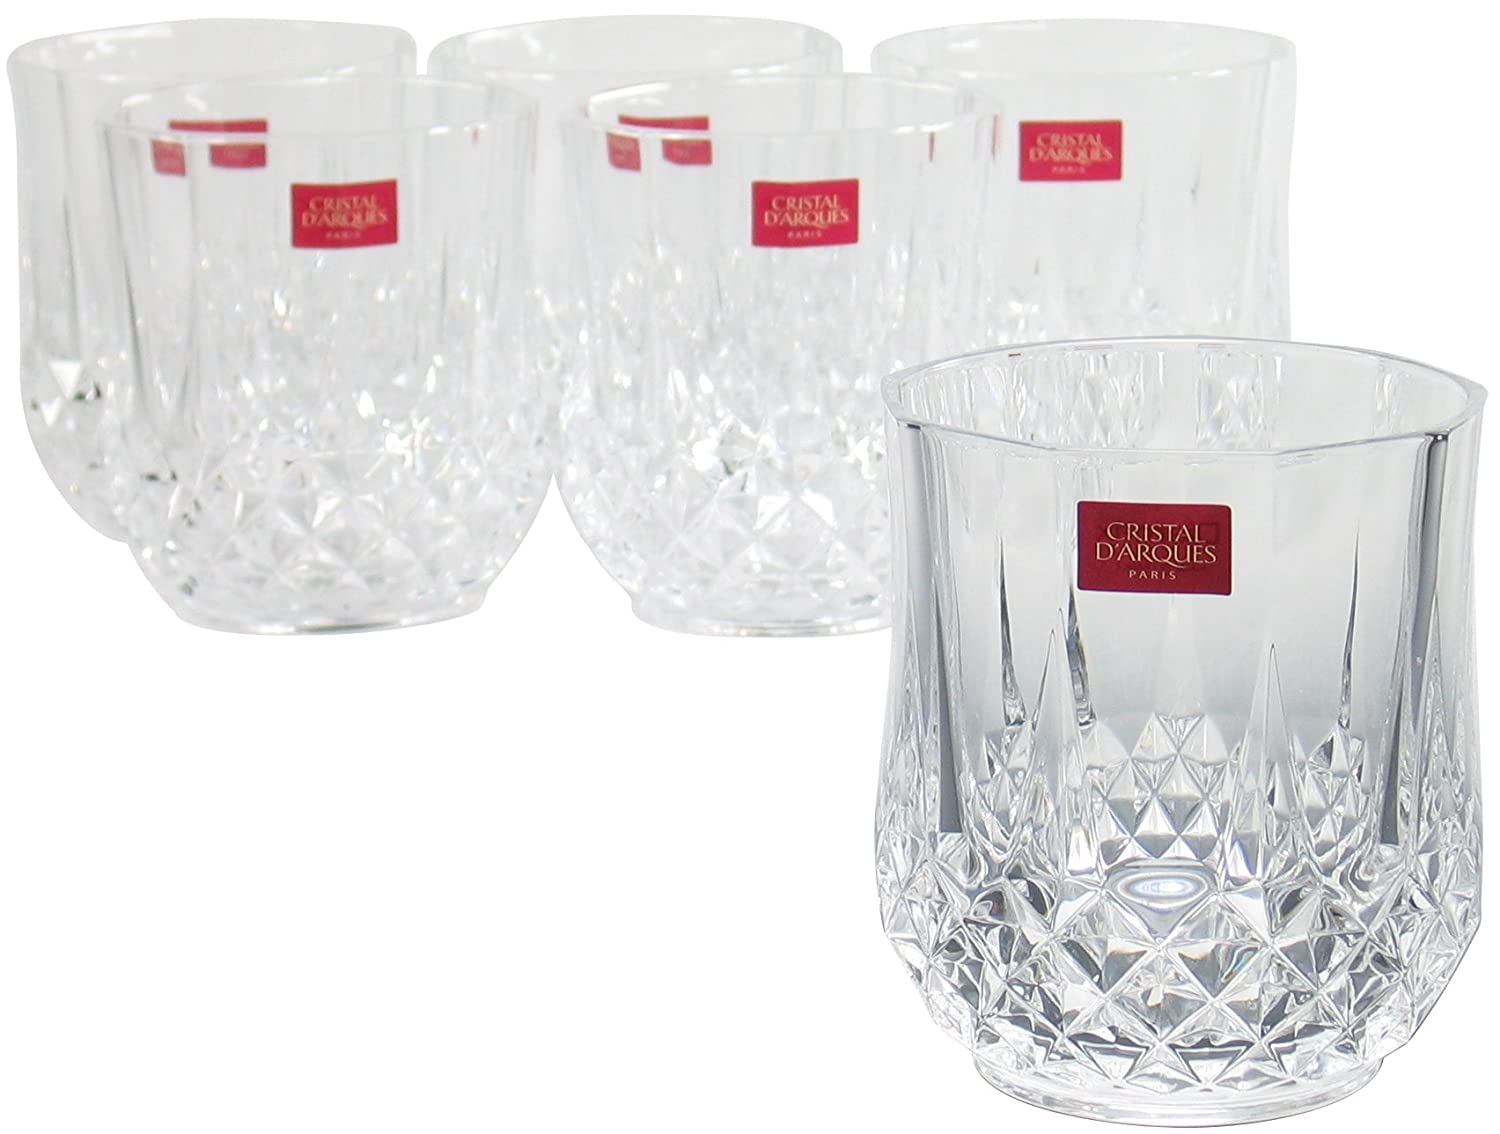 Cristal D'arques Elixir Old Fashioned Tumbler 30cl C6 Diamax Arc International 15454